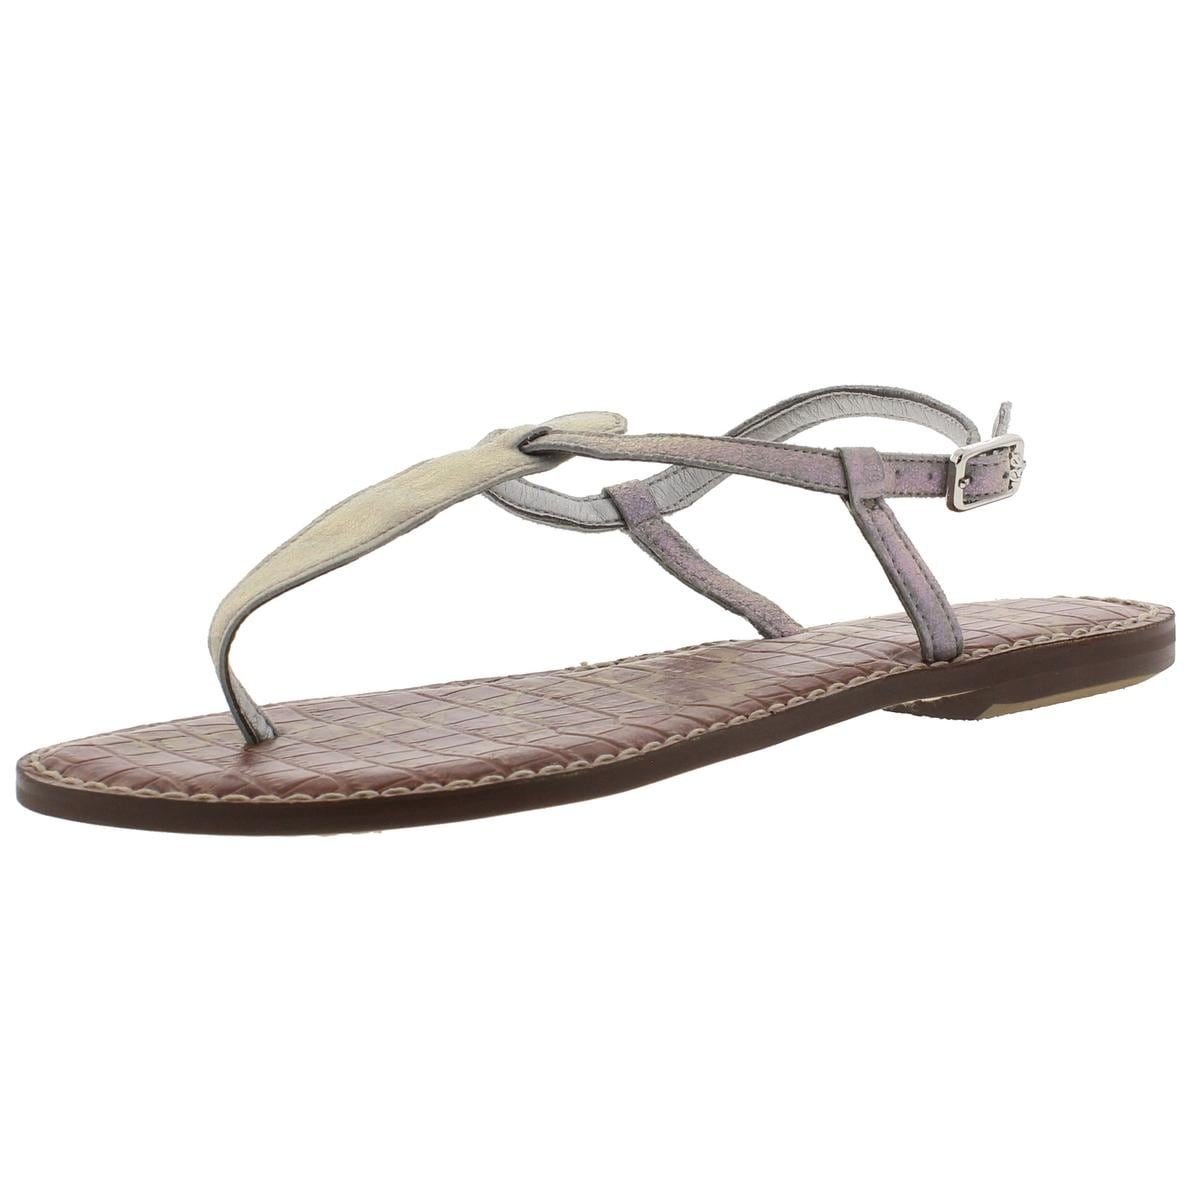 4cd099453 Shop Sam Edelman Womens Gigi Thong Sandals Buckle T-Strap - Free Shipping  On Orders Over  45 - Overstock - 13308844